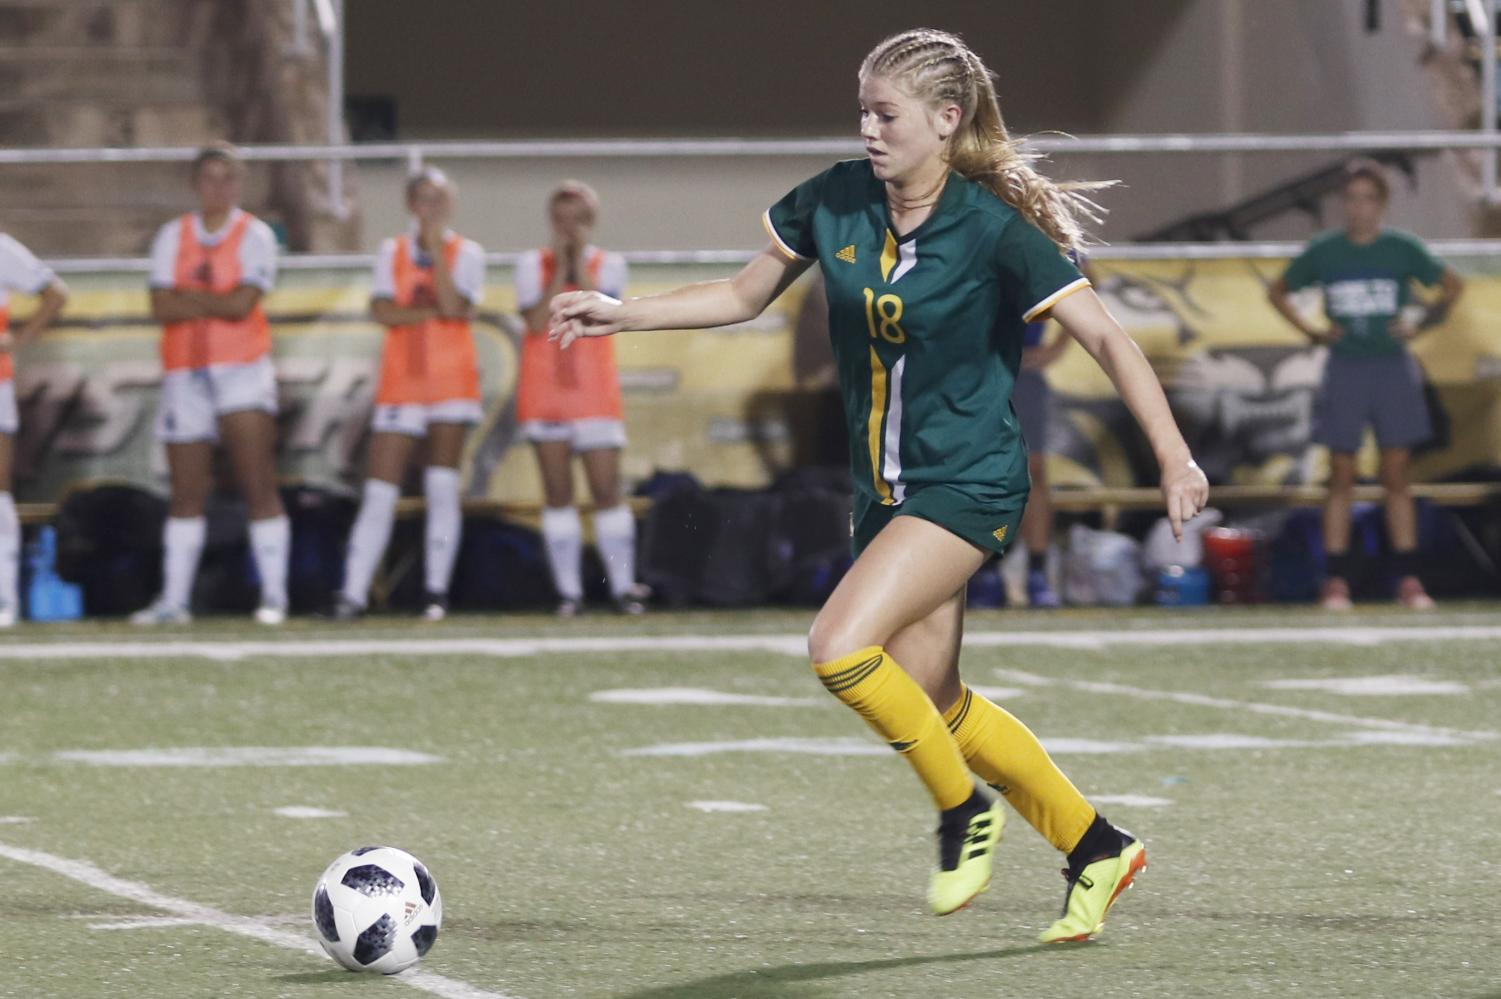 The Lady Lions soccer team lost 3-2 against Lamar University in the Southland Conference Tournament.